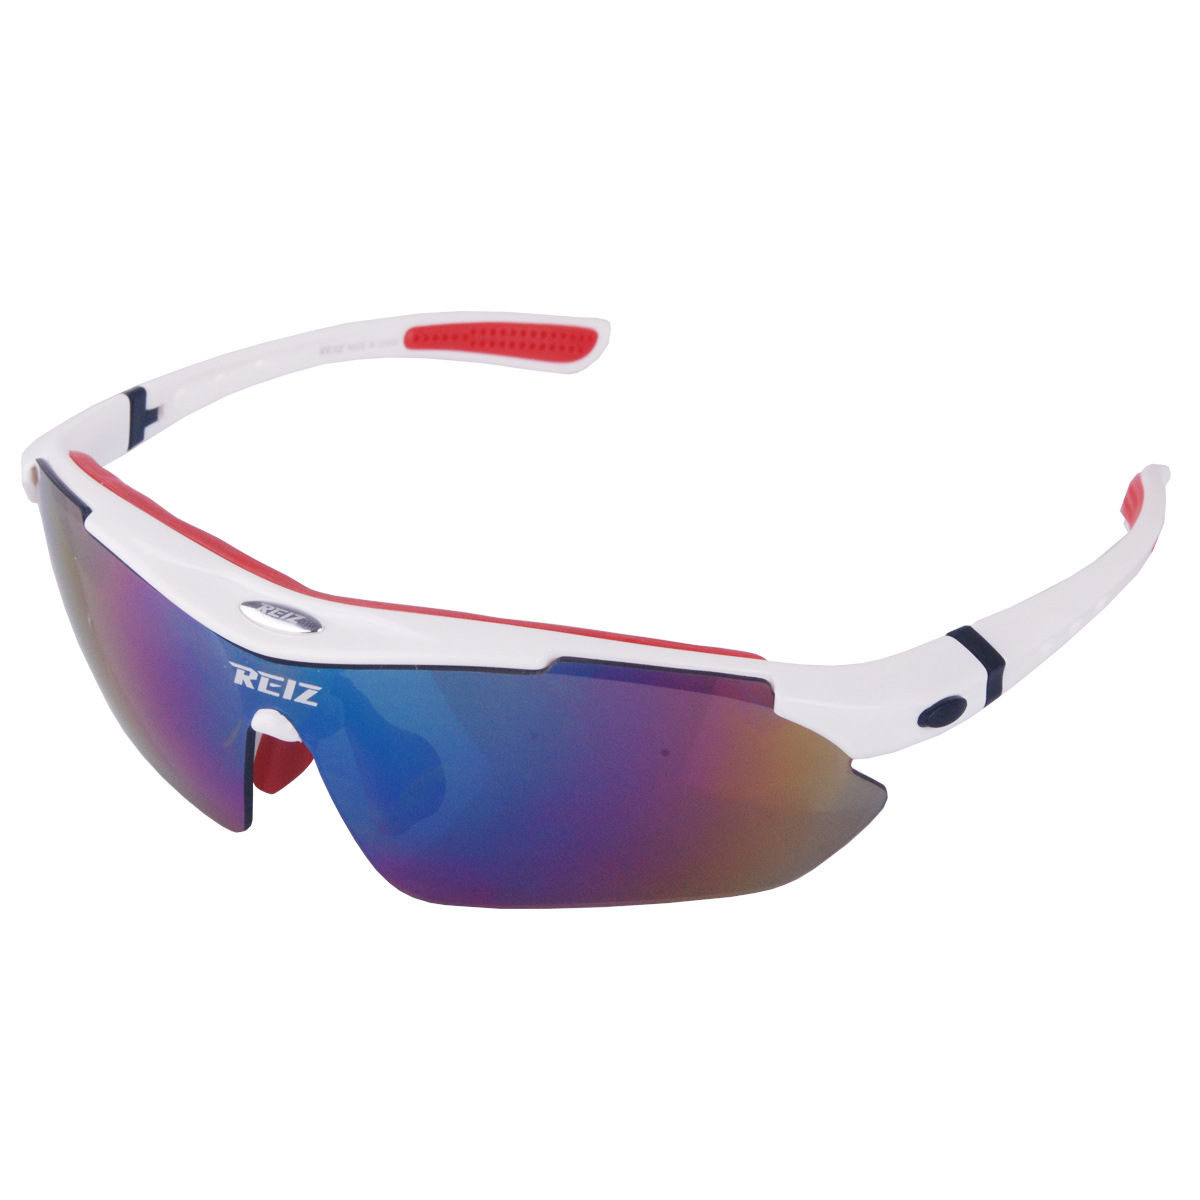 Mumian Rui Zhi Riding Outdoor Glasses Myopia Polarized Light Bicycle Glass Set Rz911